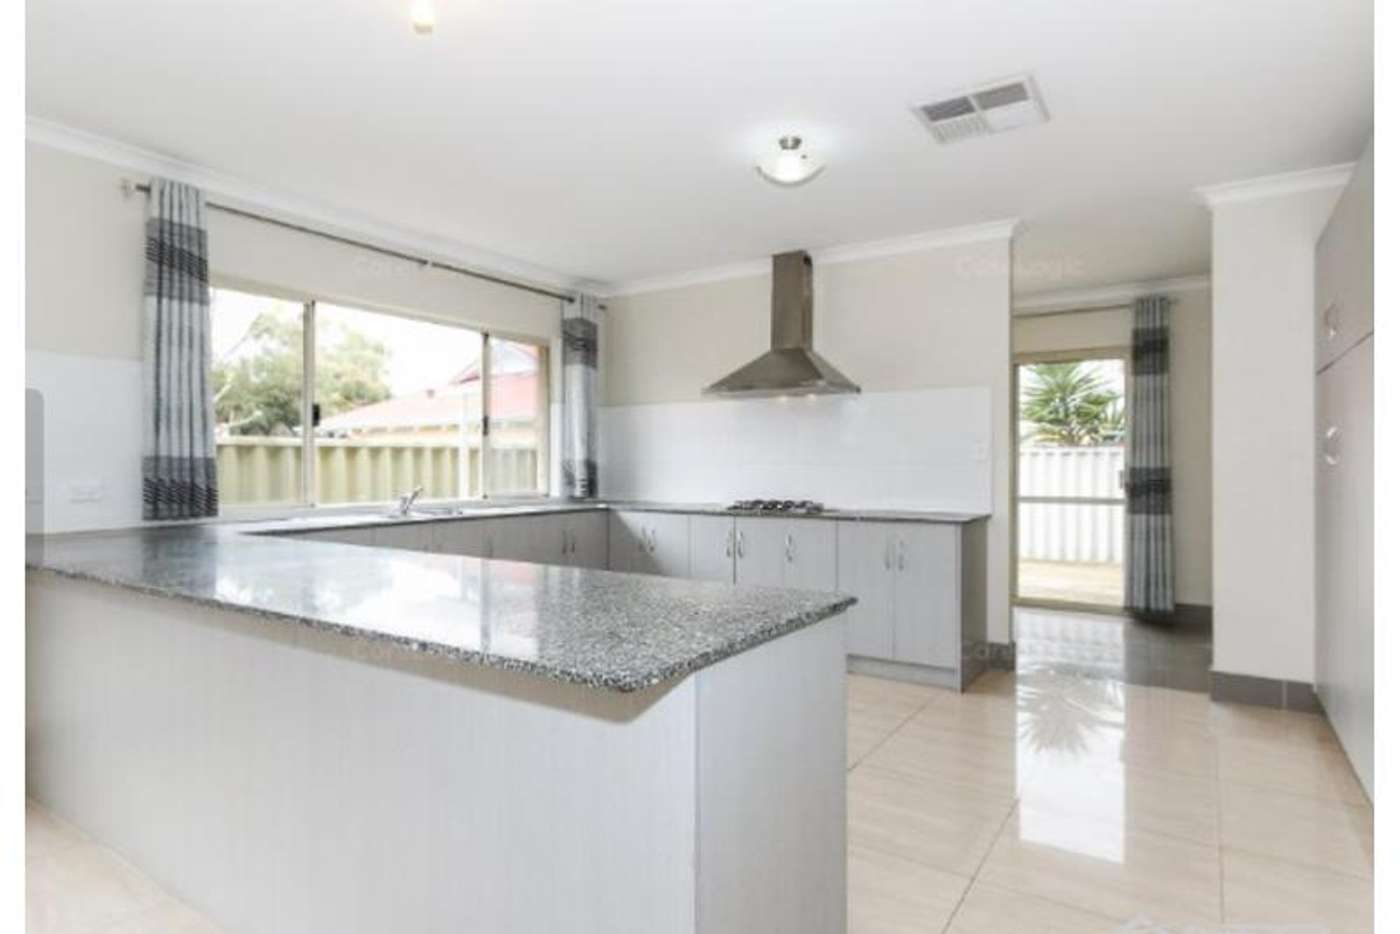 Main view of Homely house listing, 2/43 Ewart Street, Midvale WA 6056